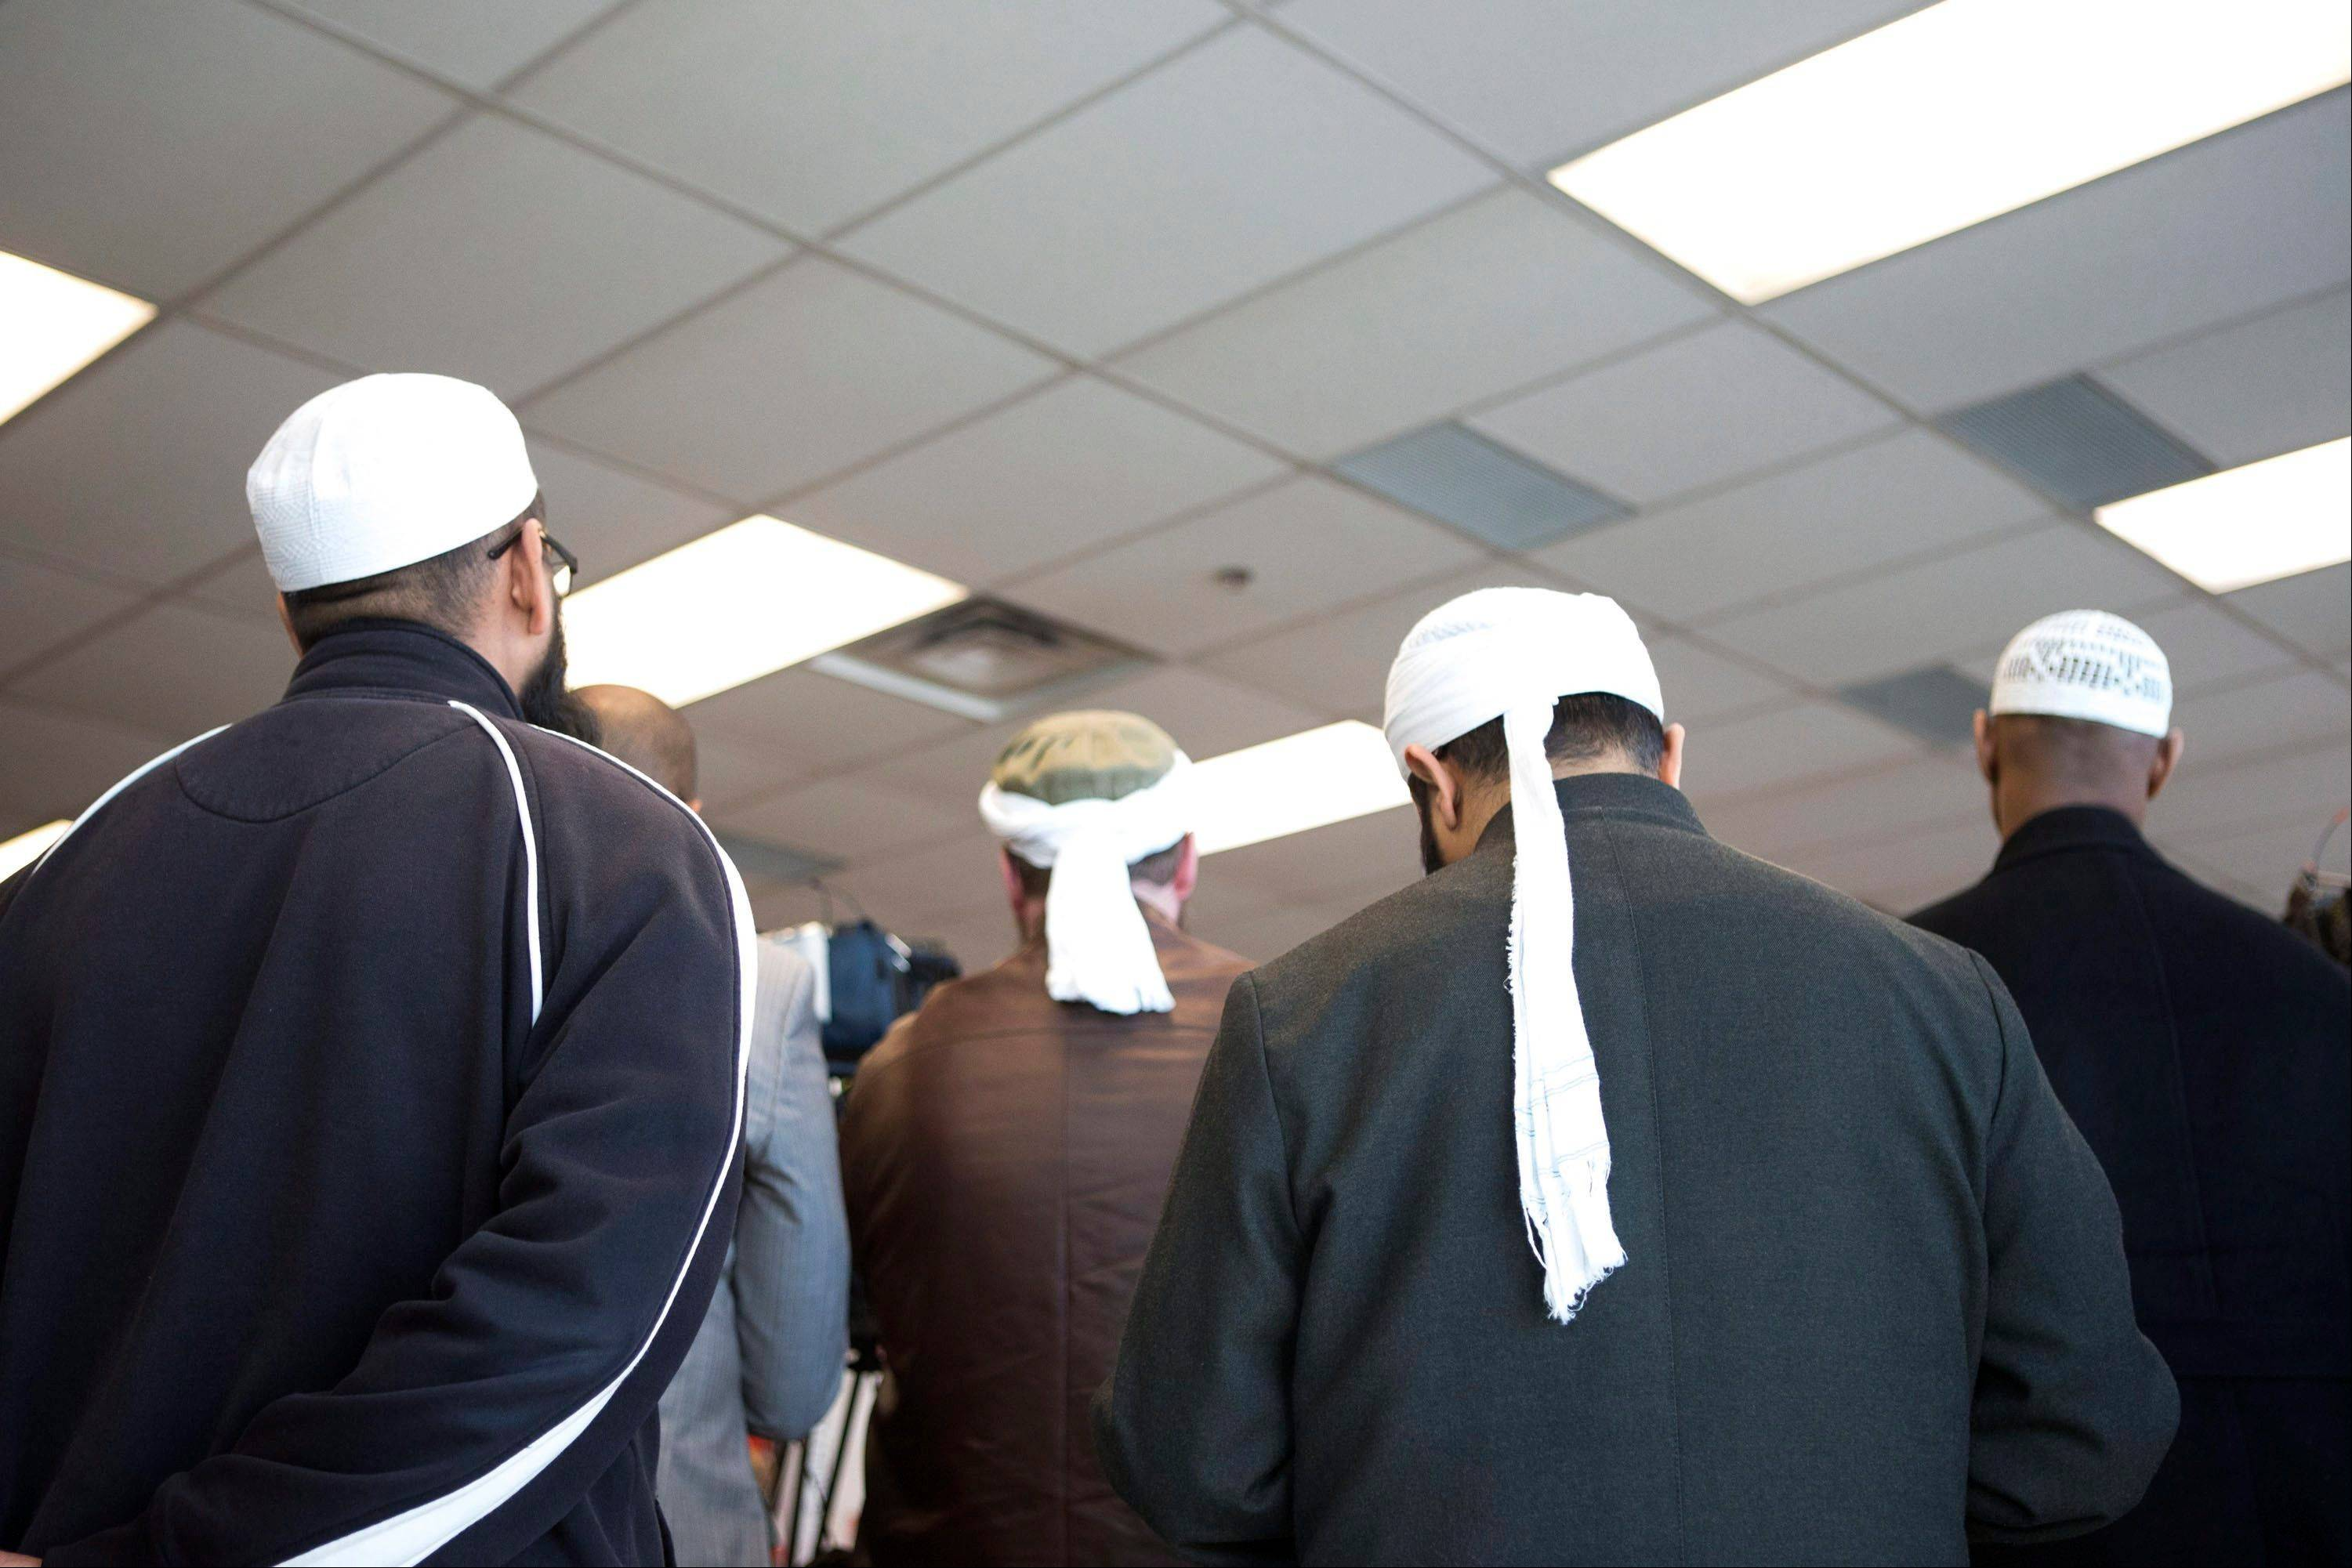 Representatives of Toronto's Islamic community attend a news conference in Toronto as the Royal Canadian Mounted Police announce the arrest of two men accused of plotting a terror attack on rail target, in Toronto, Monday April 22, 2013.